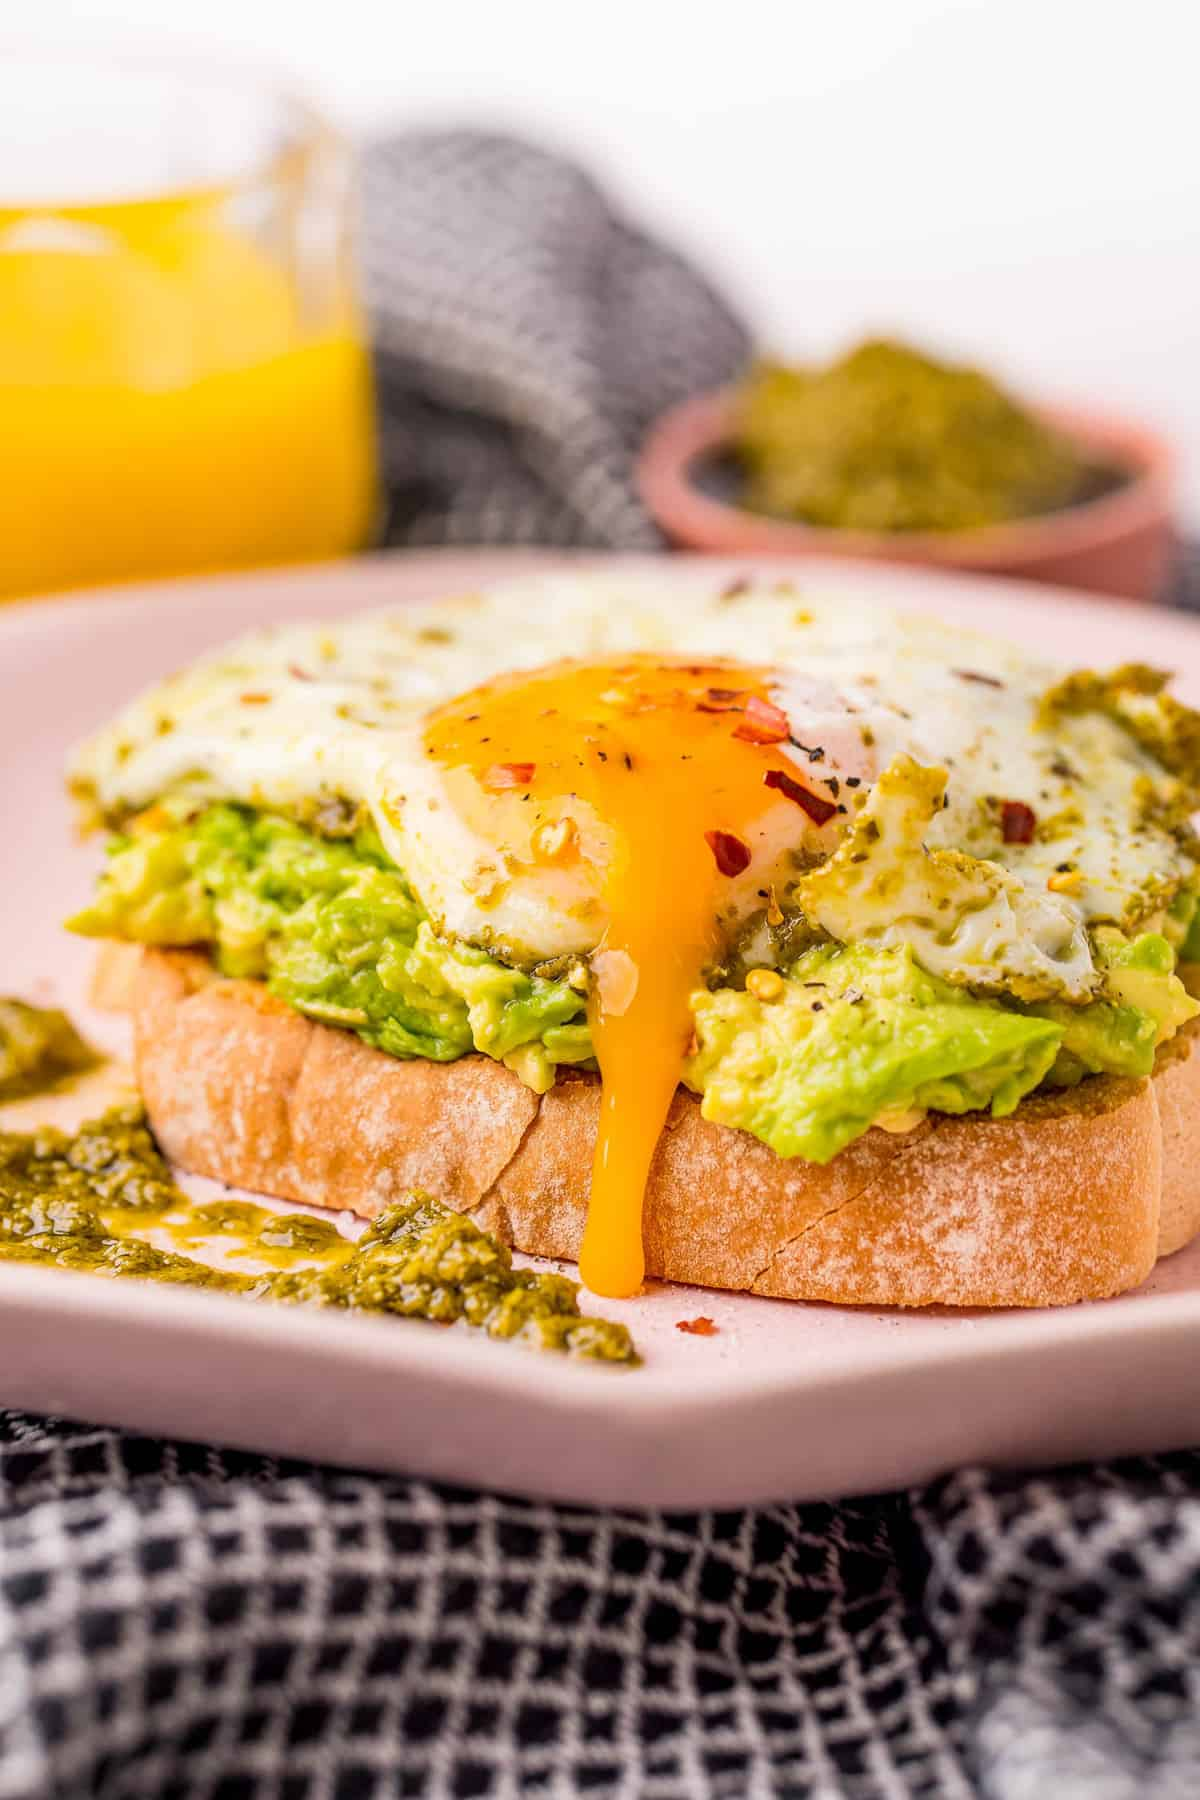 Runny egg on top of avocado toast.